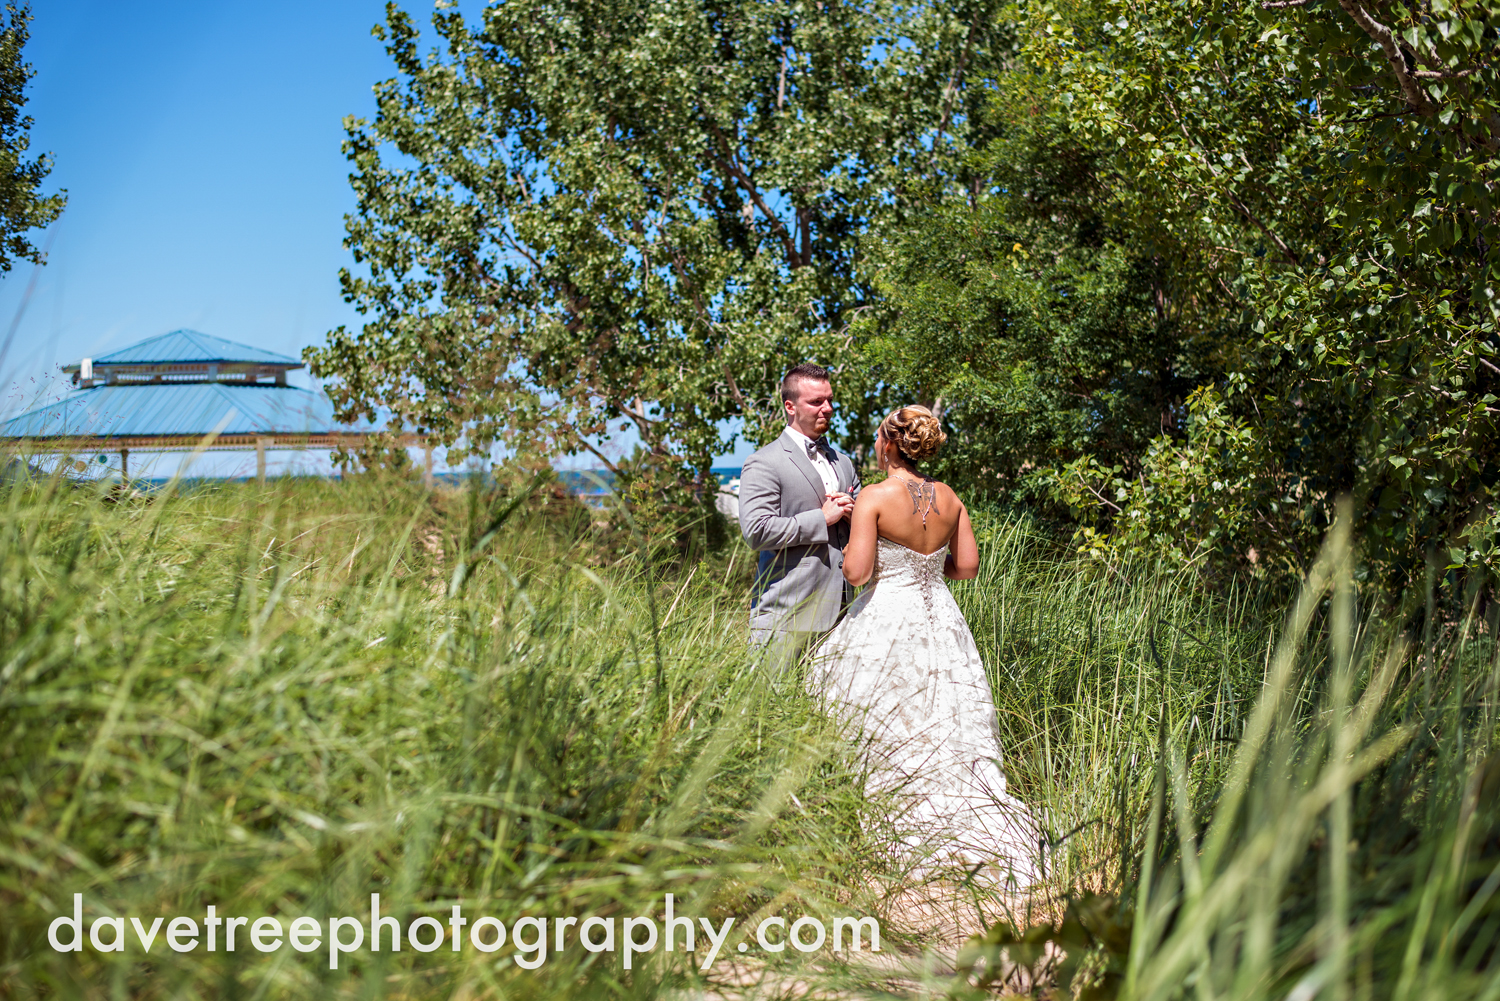 veranda_wedding_photographer_st_joseph_wedding_149.jpg